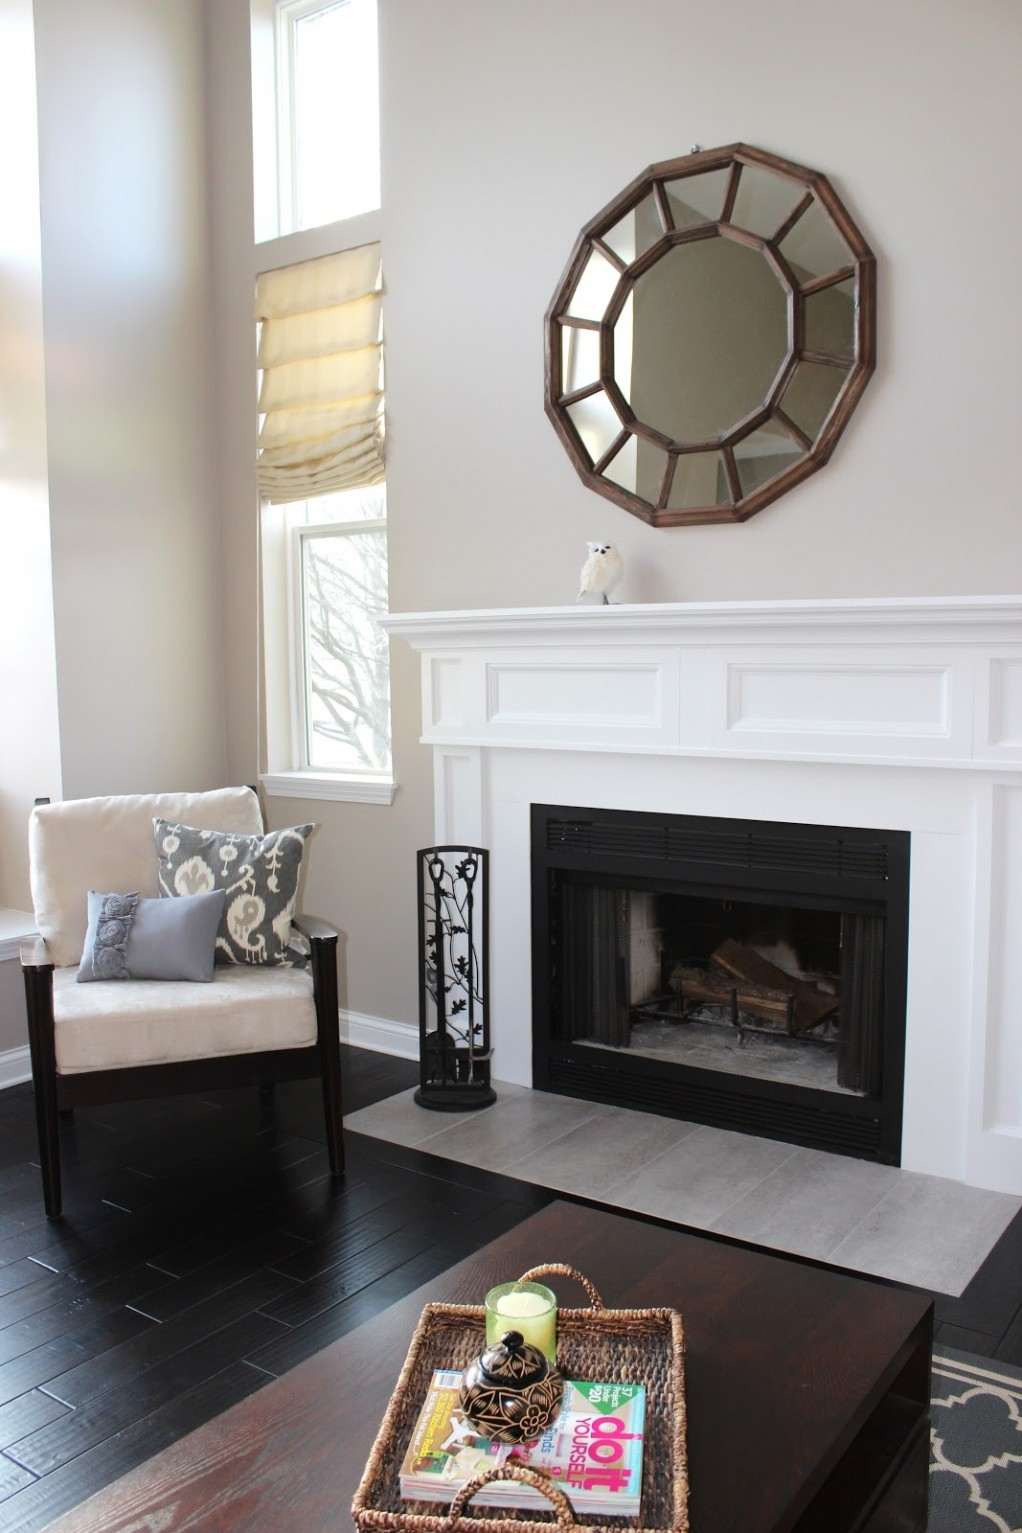 Decoration Decorate Fireplace Using Wall Mirror Ideas Intended For Large Mantel Mirror (View 6 of 15)